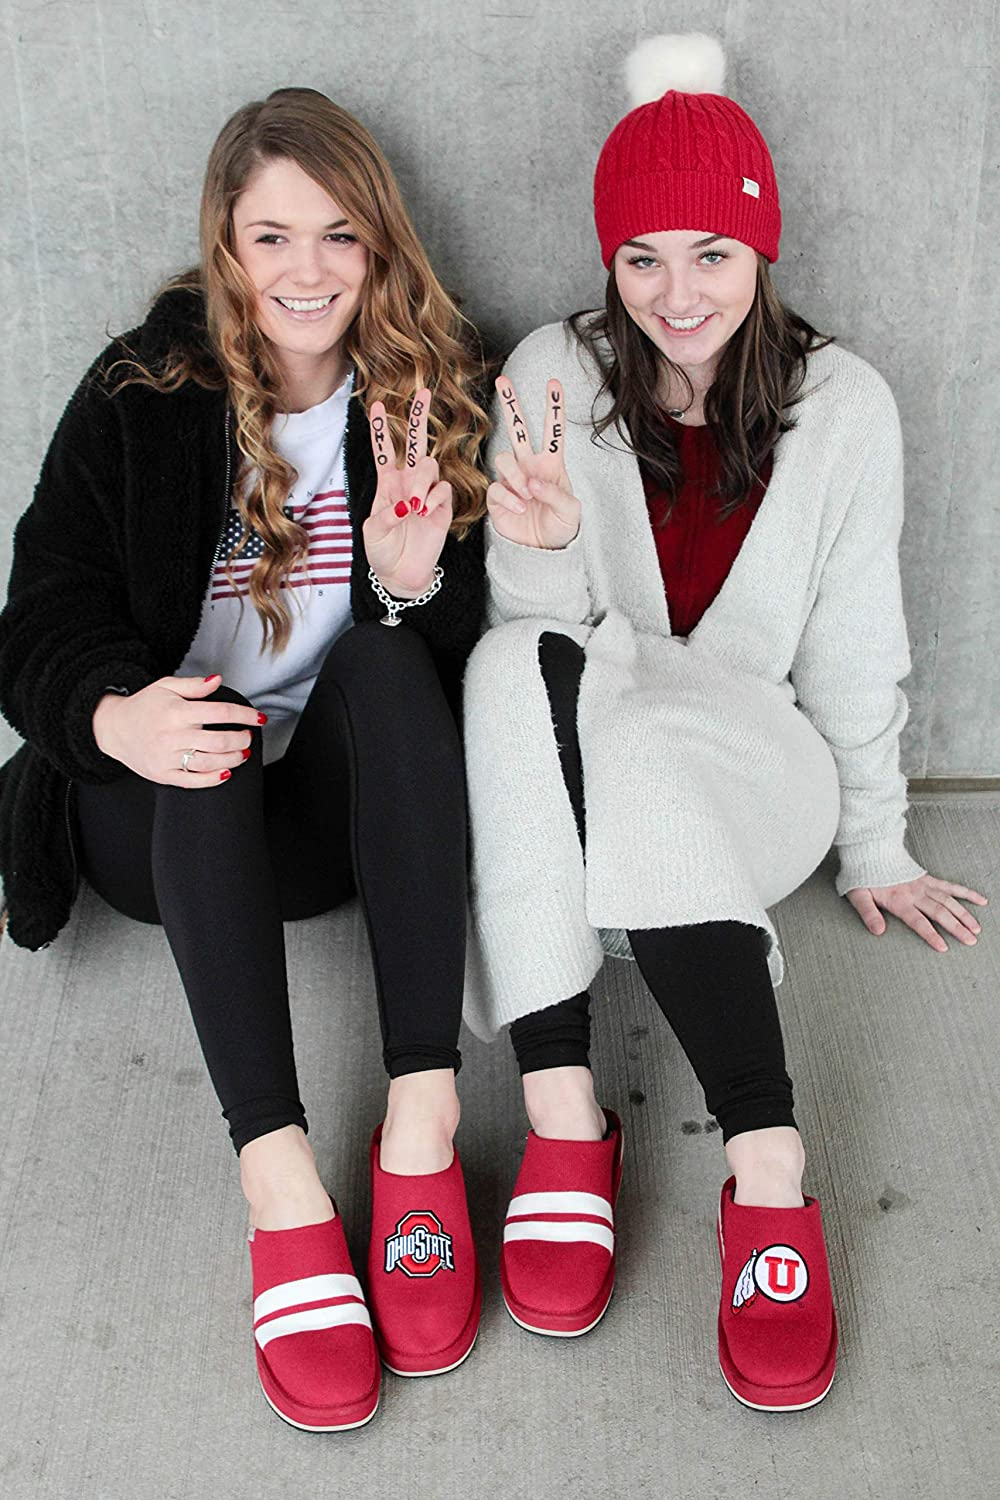 Stanford Cardinal Spirit Wear Perfect for Indoor and Outdoor Wear Zenzee NCAA College Spirit Wear Slip-On Mule Style Knit Platform Shoes for Women Available in Sizes 6-10